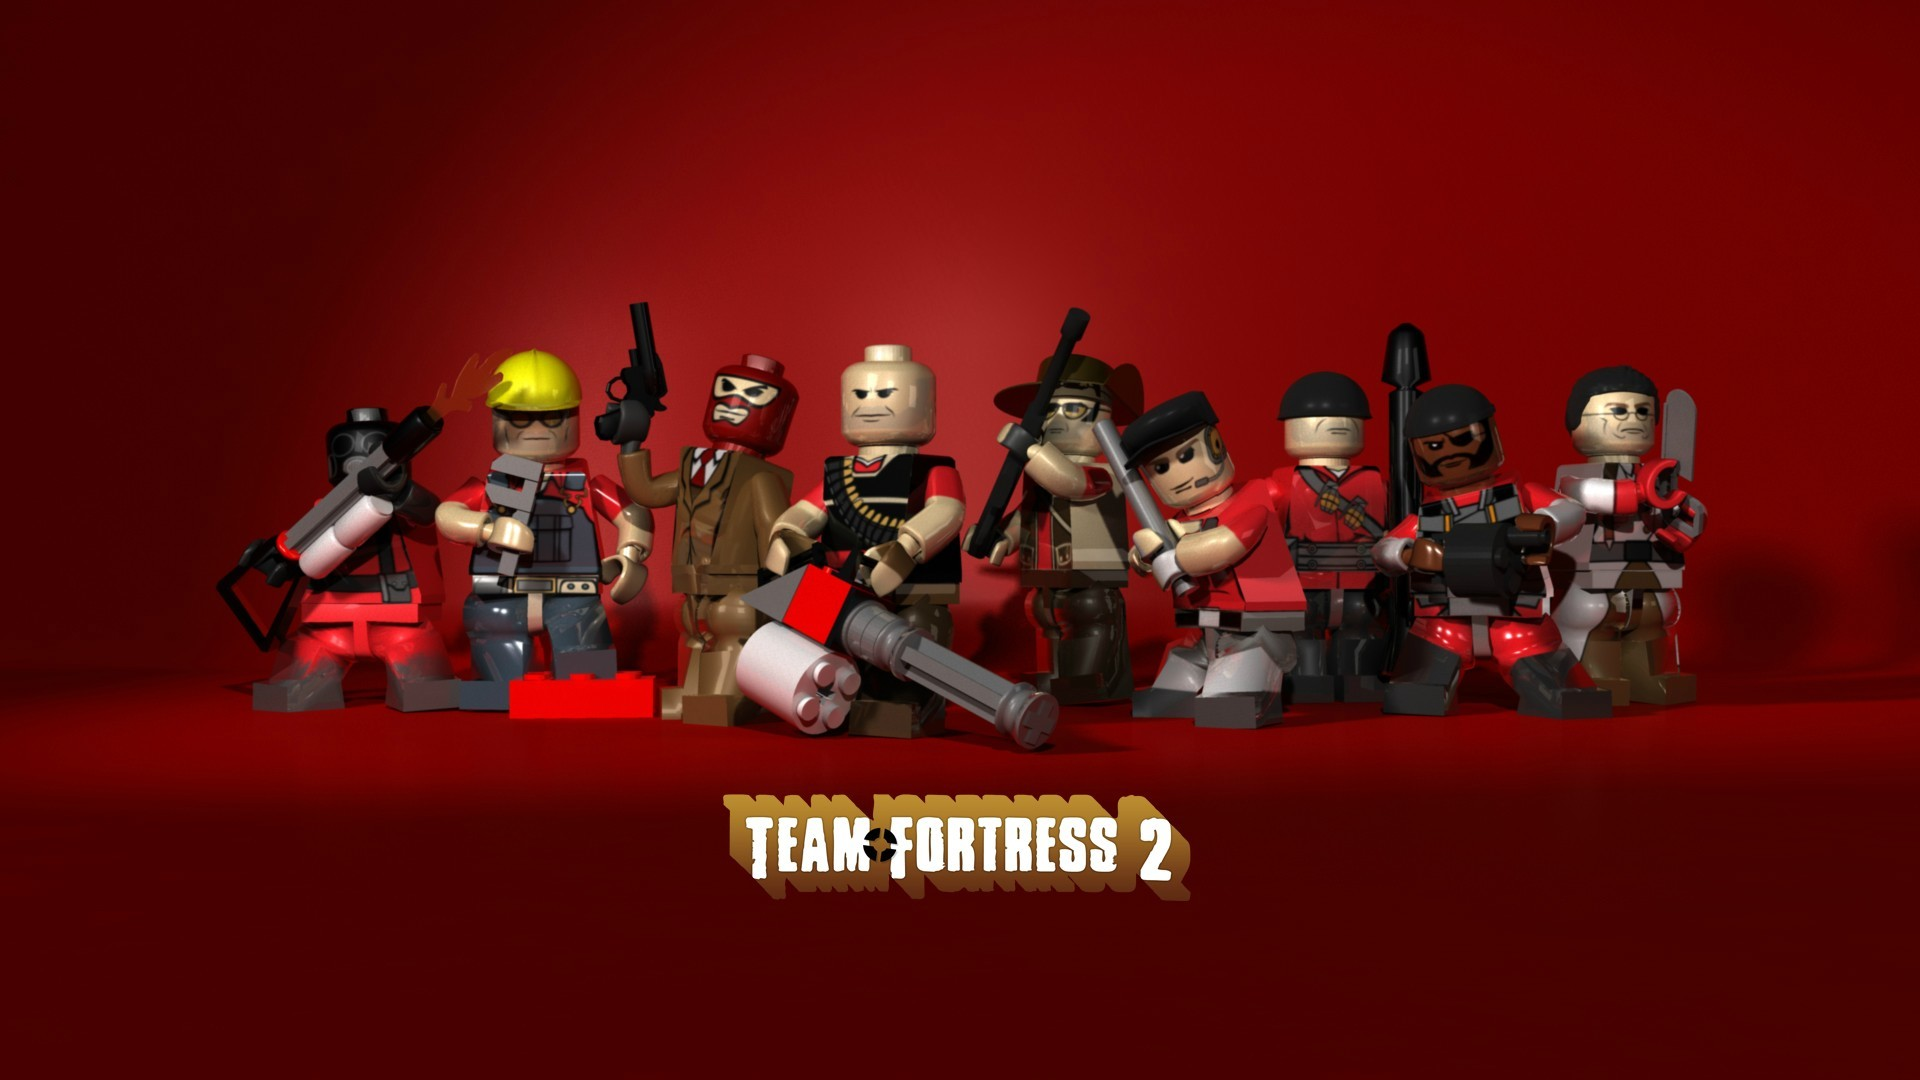 1920x1080 Gaming wallpaper games team fortress 2